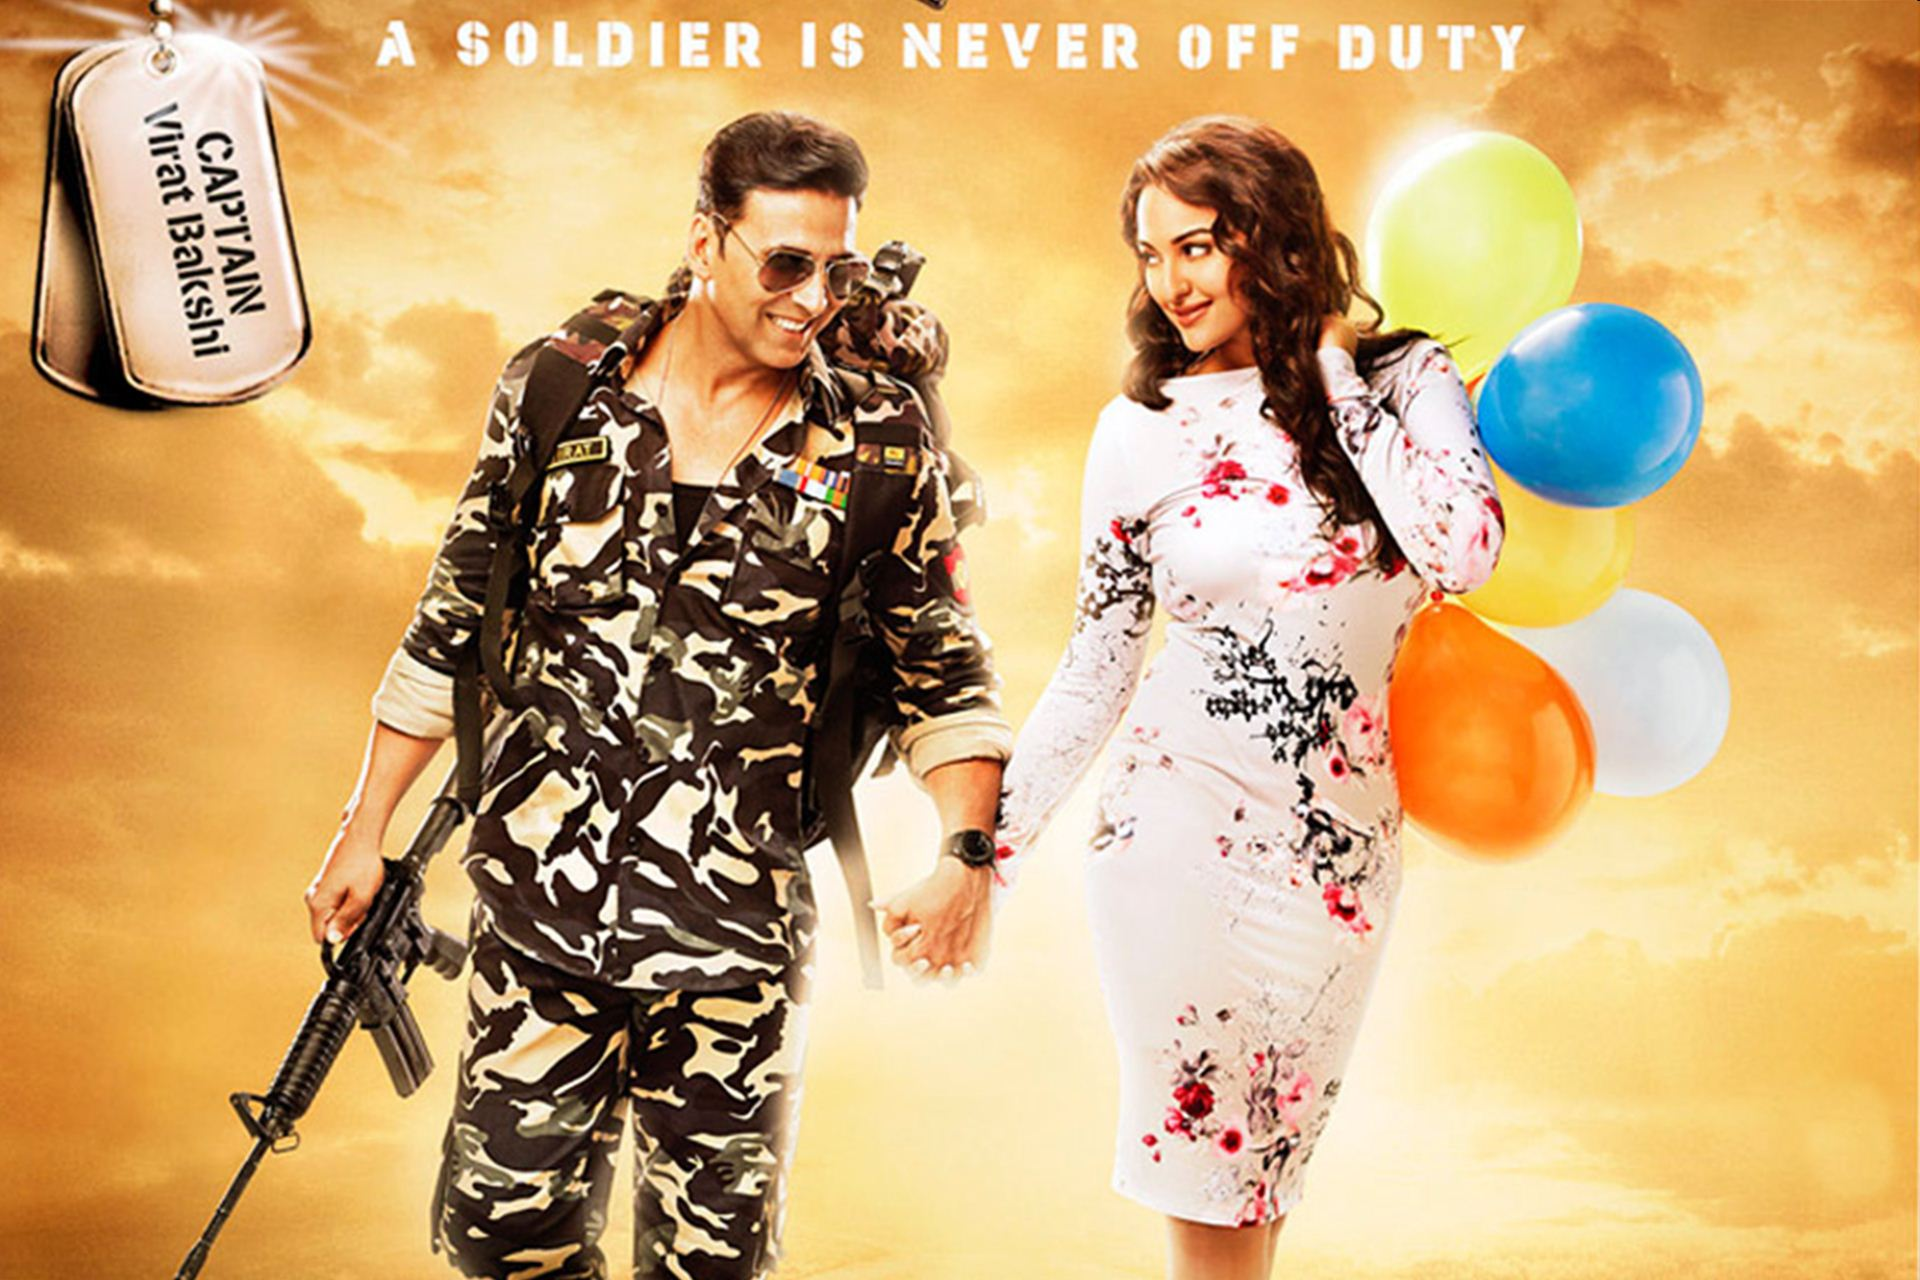 holiday-movie-review